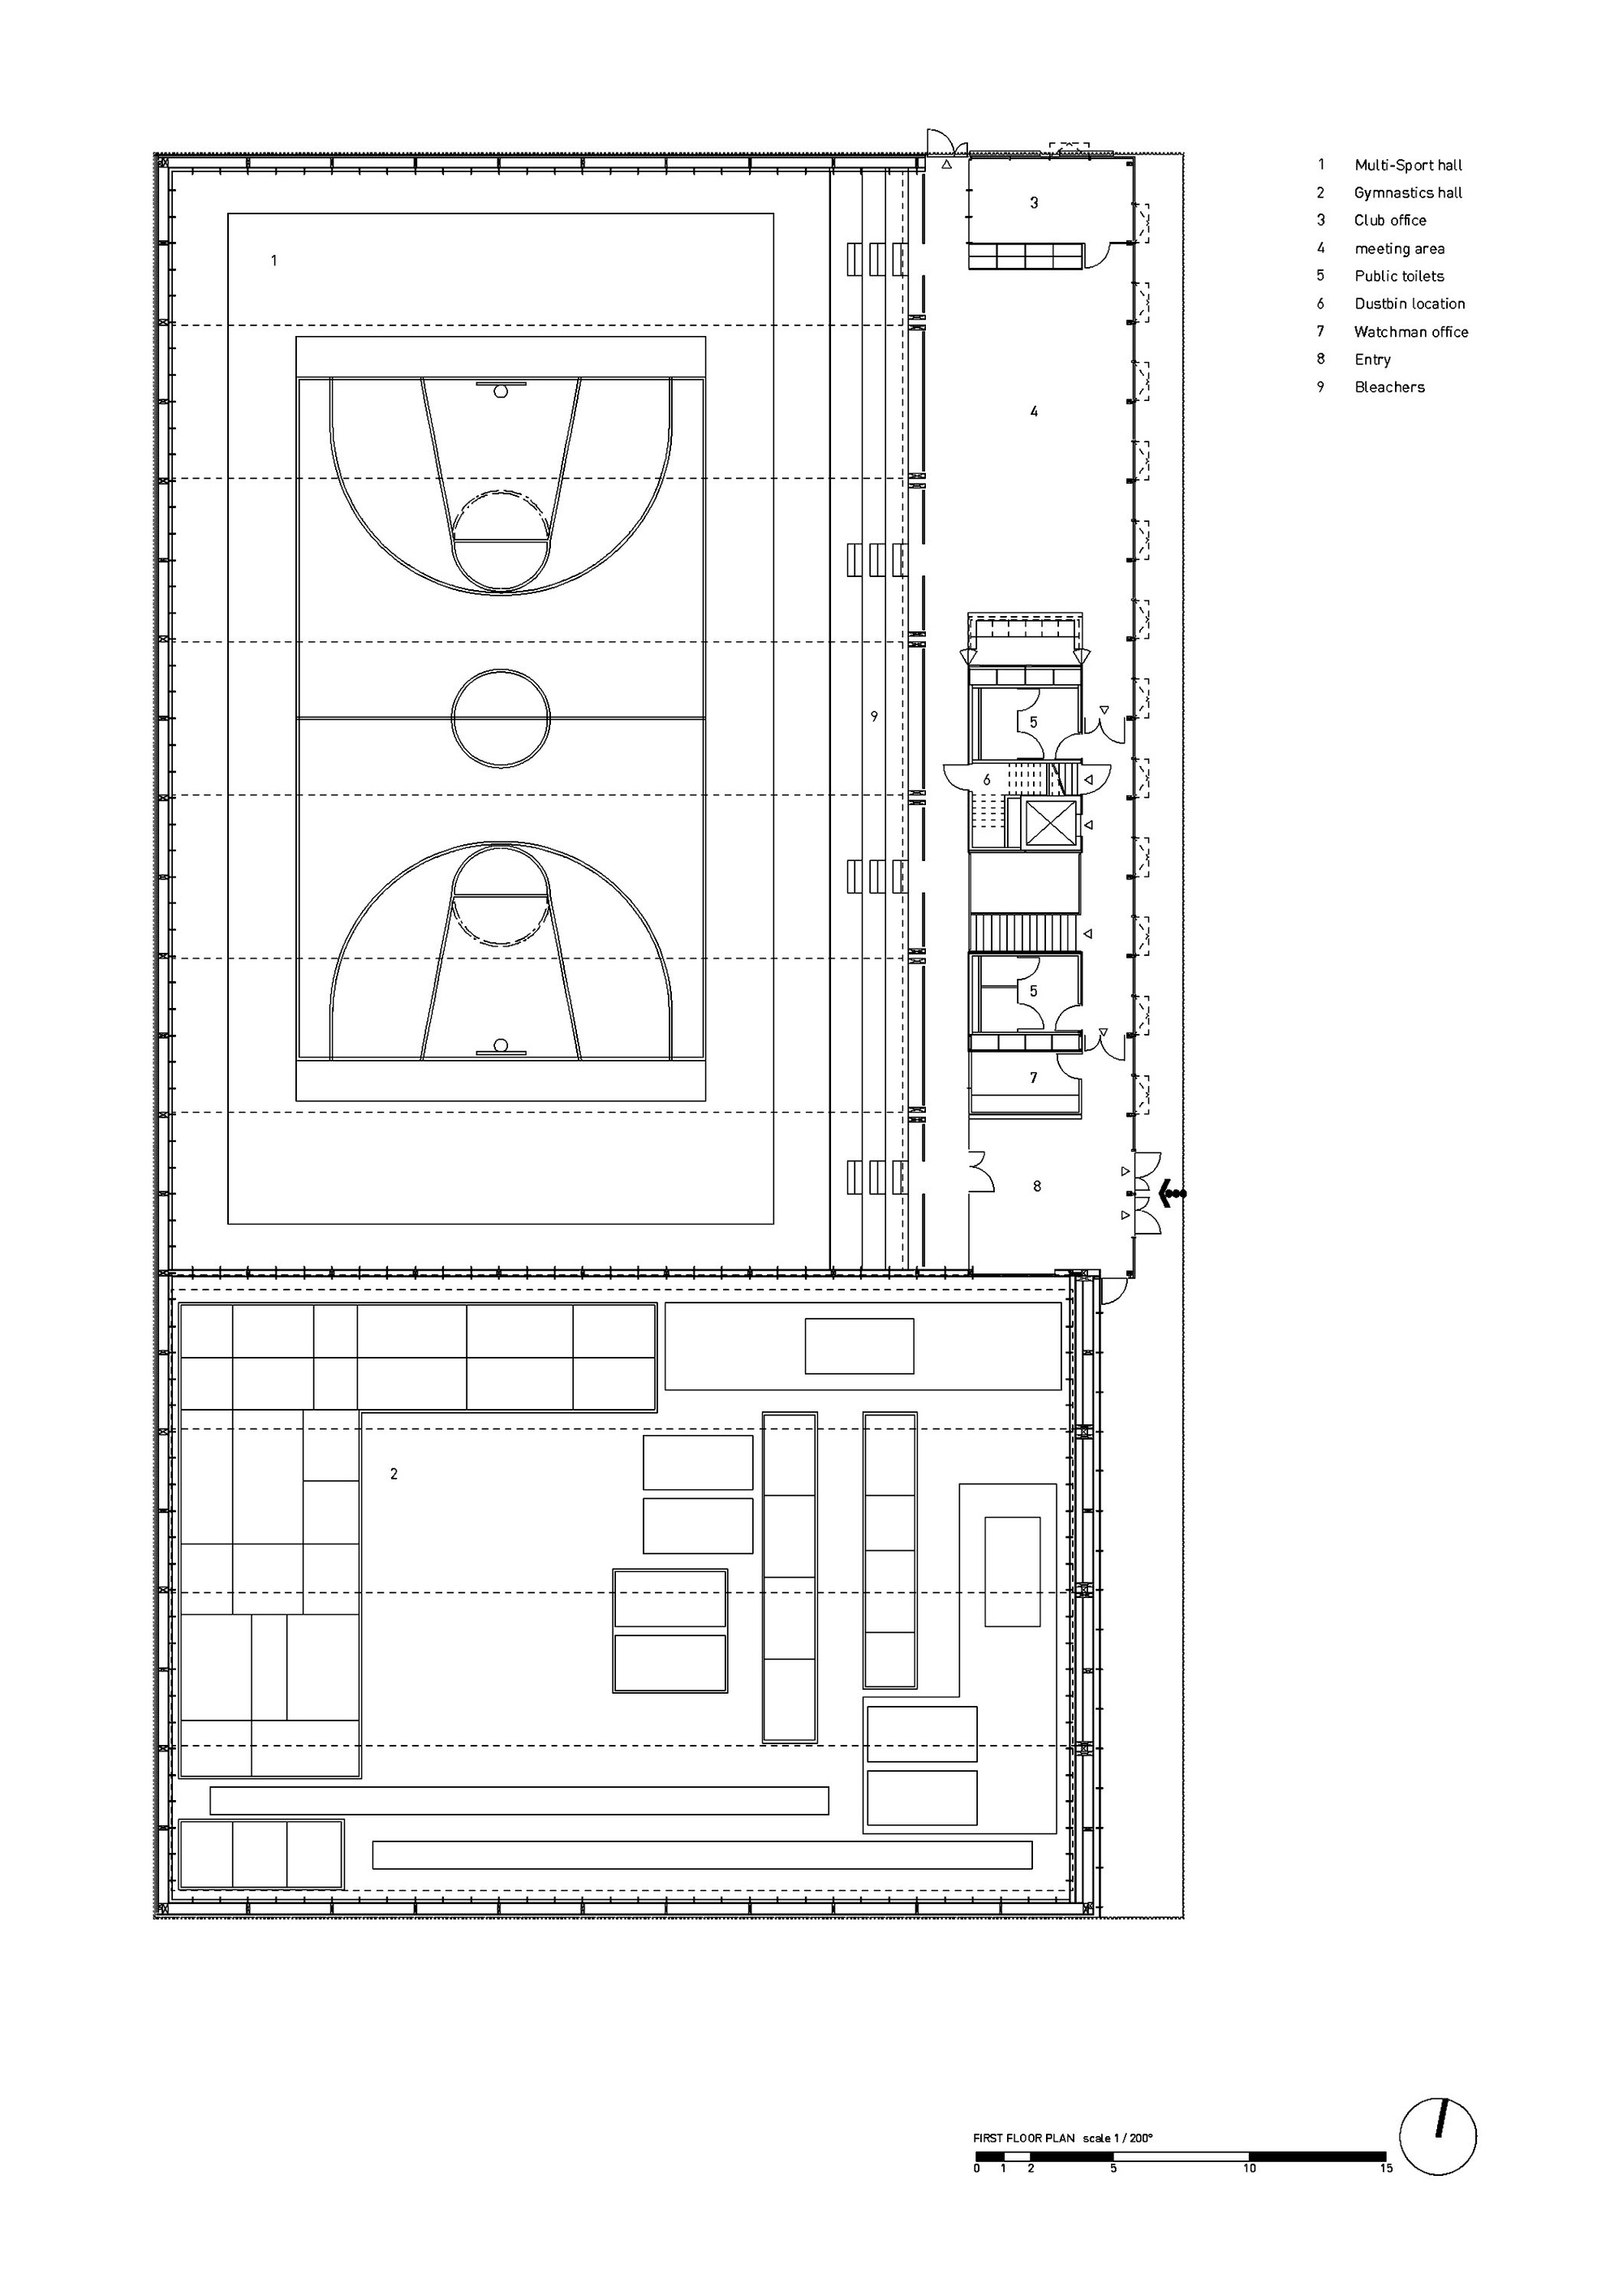 Gallery of hacine cherifi gymnasium tectoniques for Gym floor plan